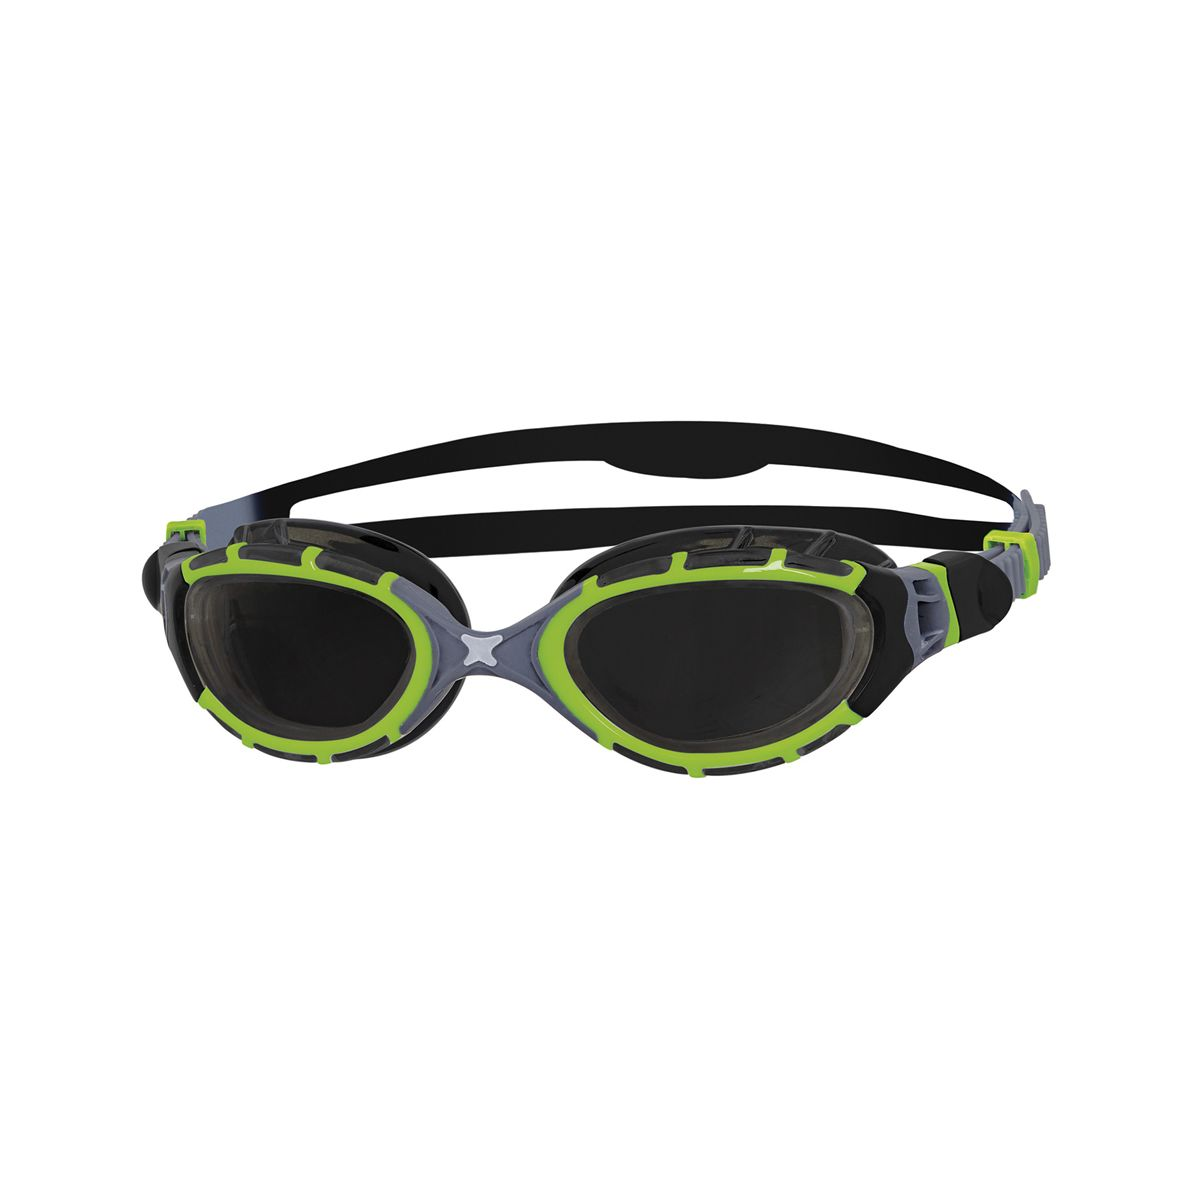 Predator Flex Titanium Reactor Swimming Goggles Self-Tinting